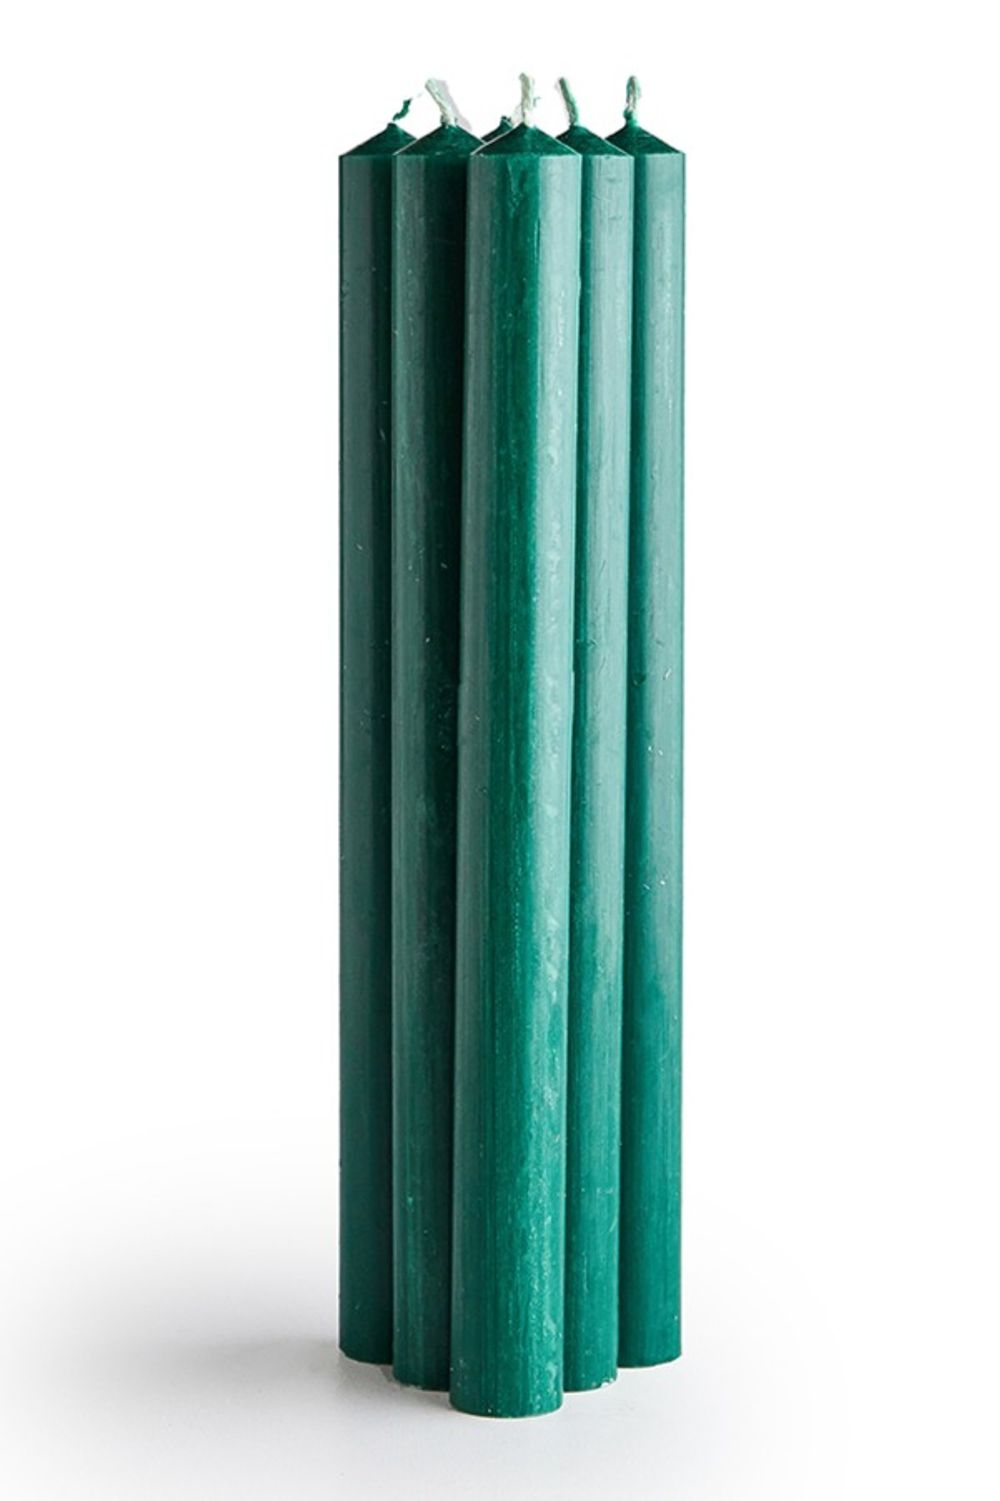 Tapers 7/8x10 - Woodland Green